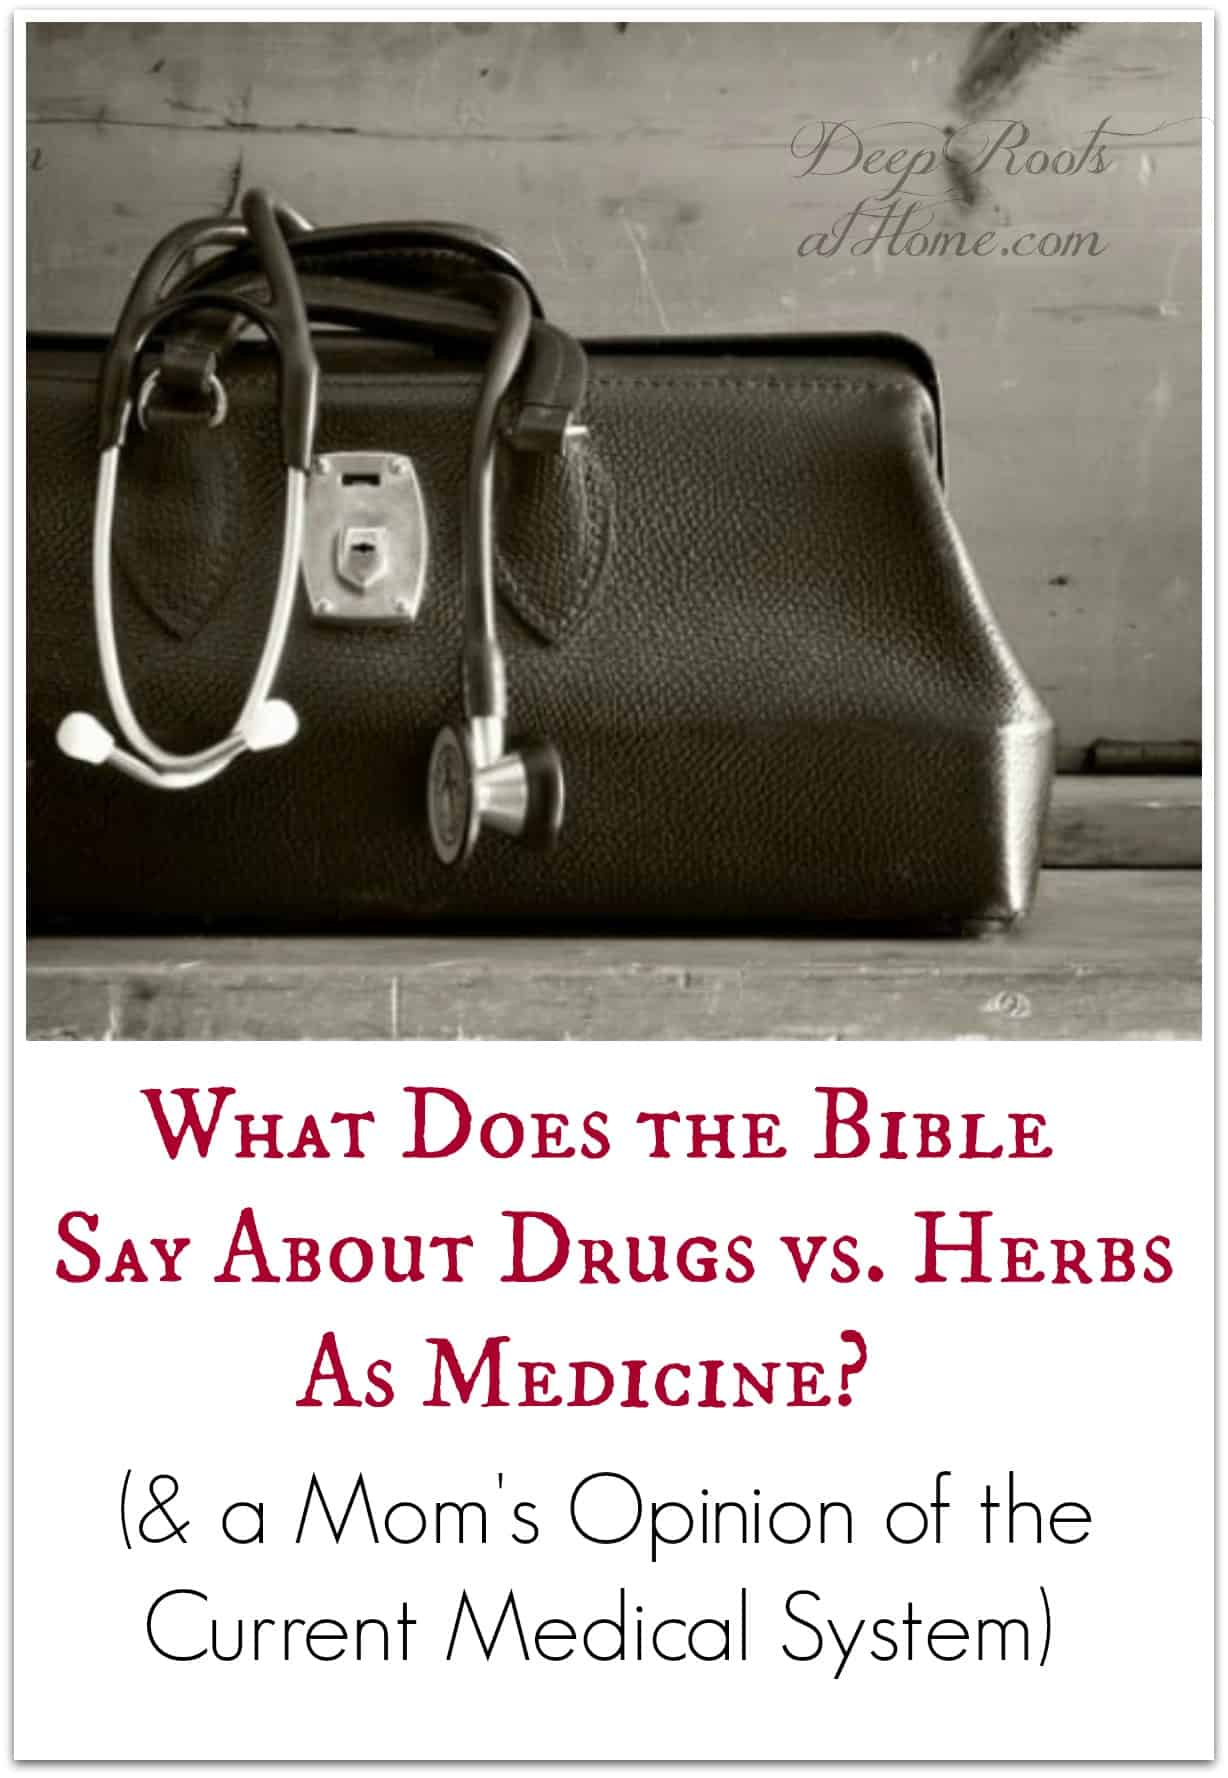 Drugs vs. Herbs As Medicine: What Does The Bible Say? A doctor's bag and stethoscope.